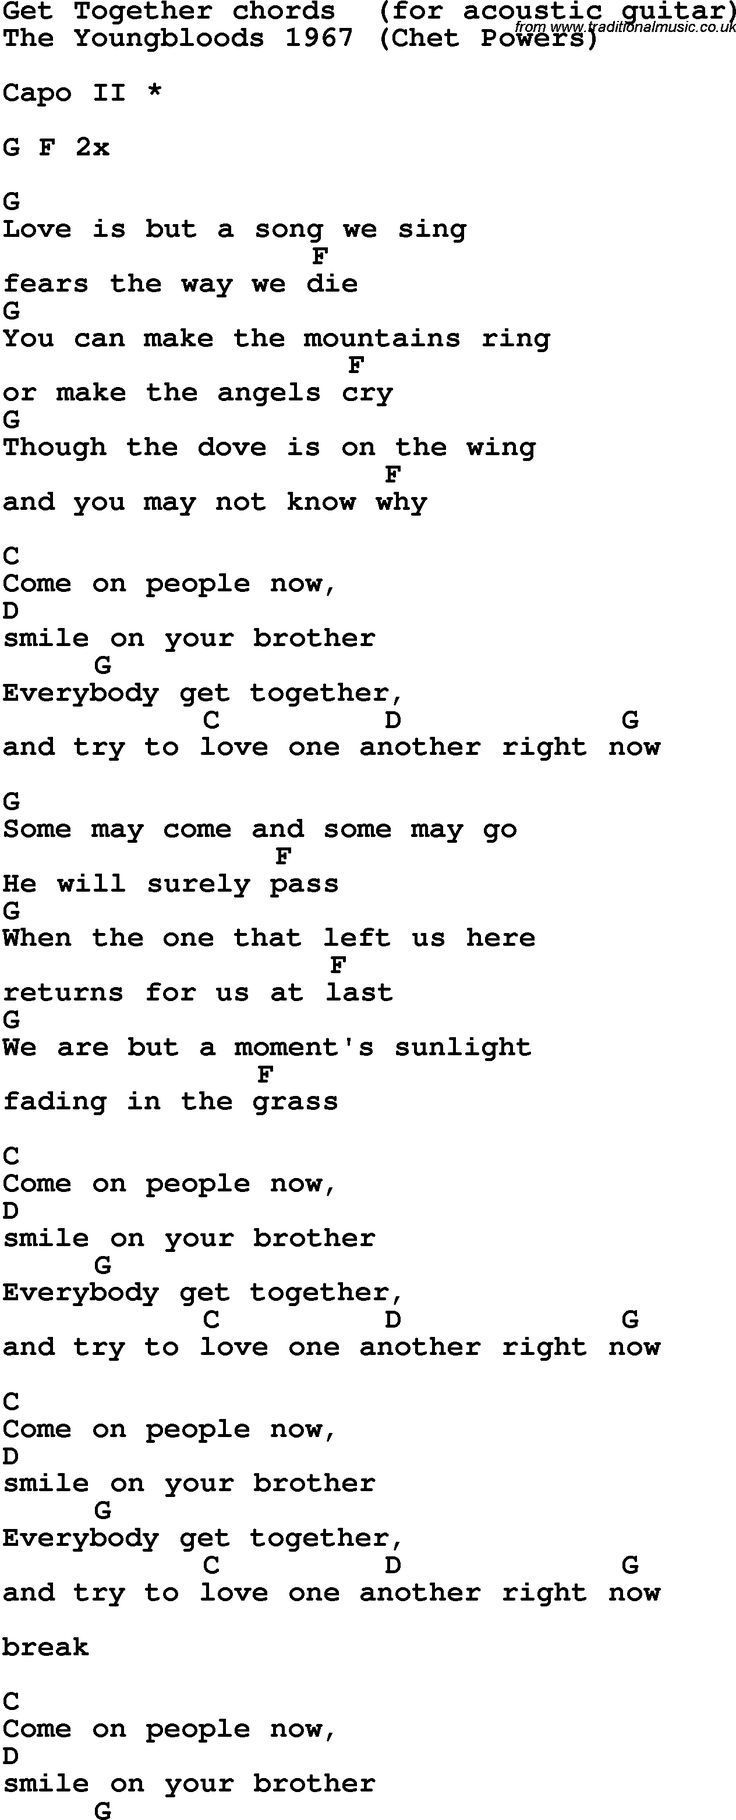 Song Lyrics With Guitar Chords For Get Together Awesome Electric